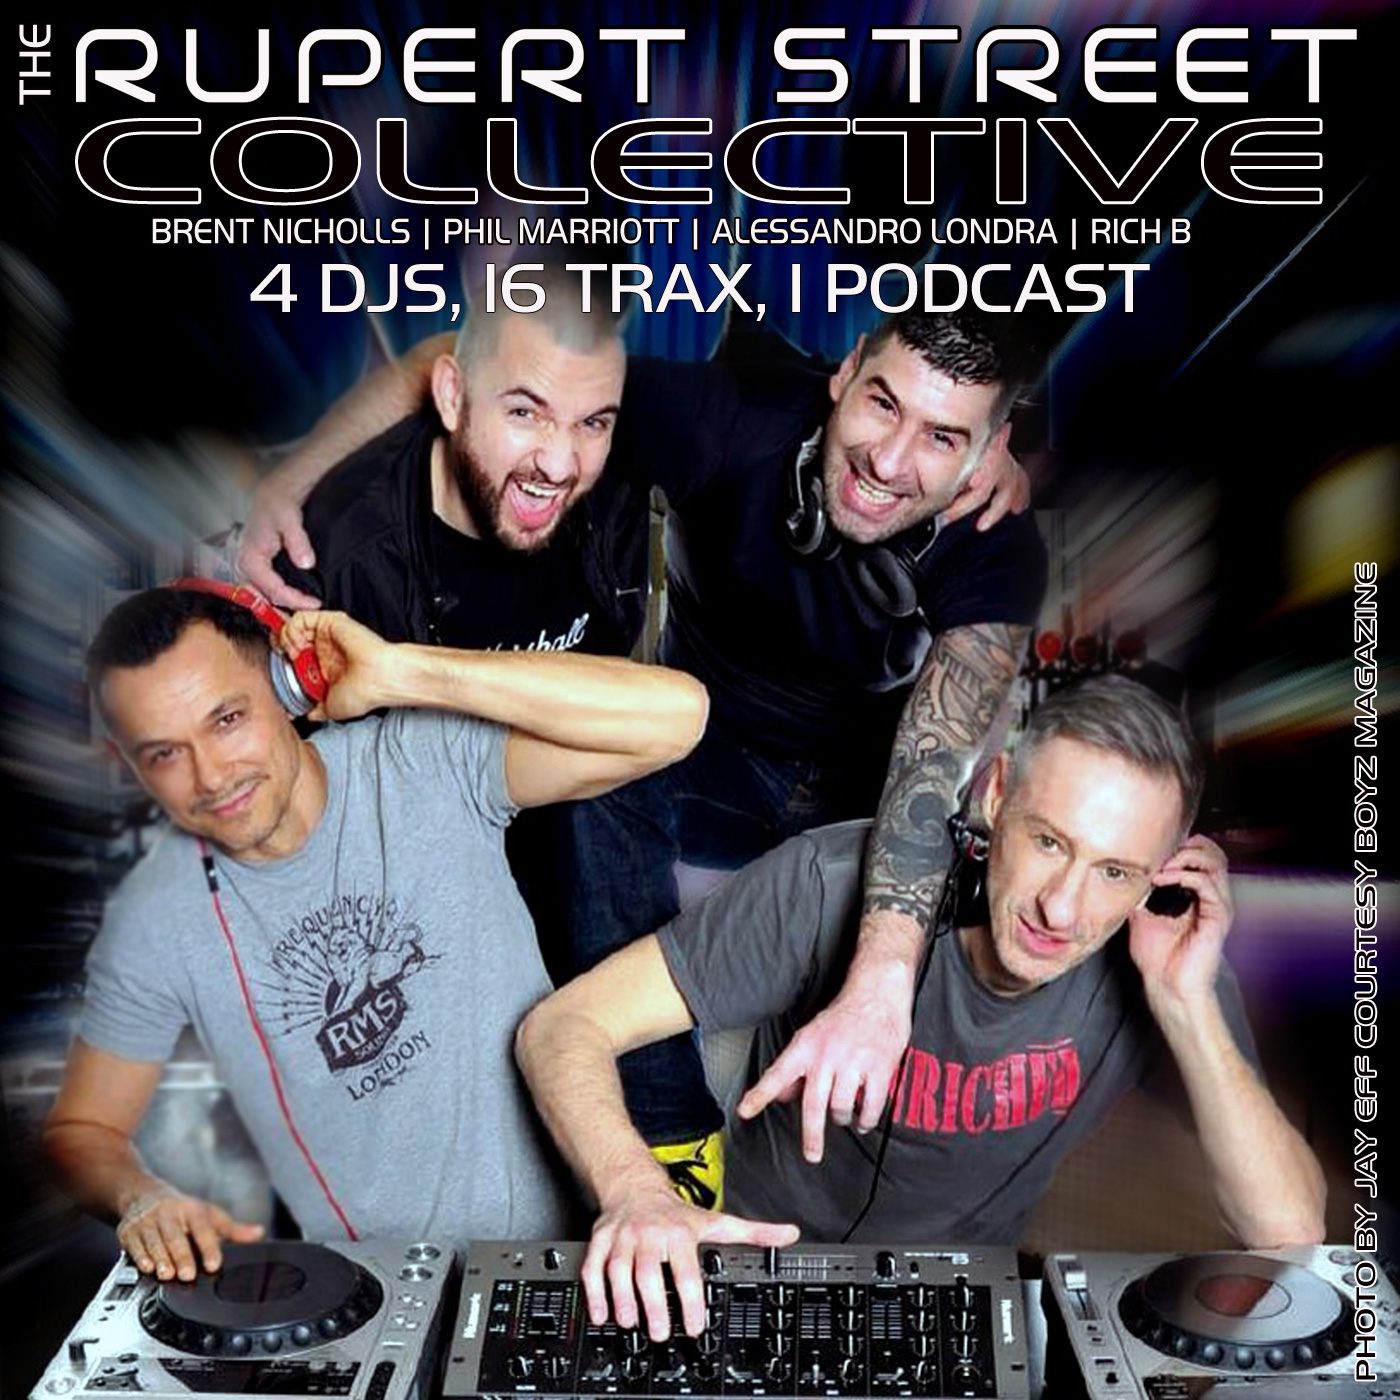 PODCAST: RUPERT STREET COLLECTIVE